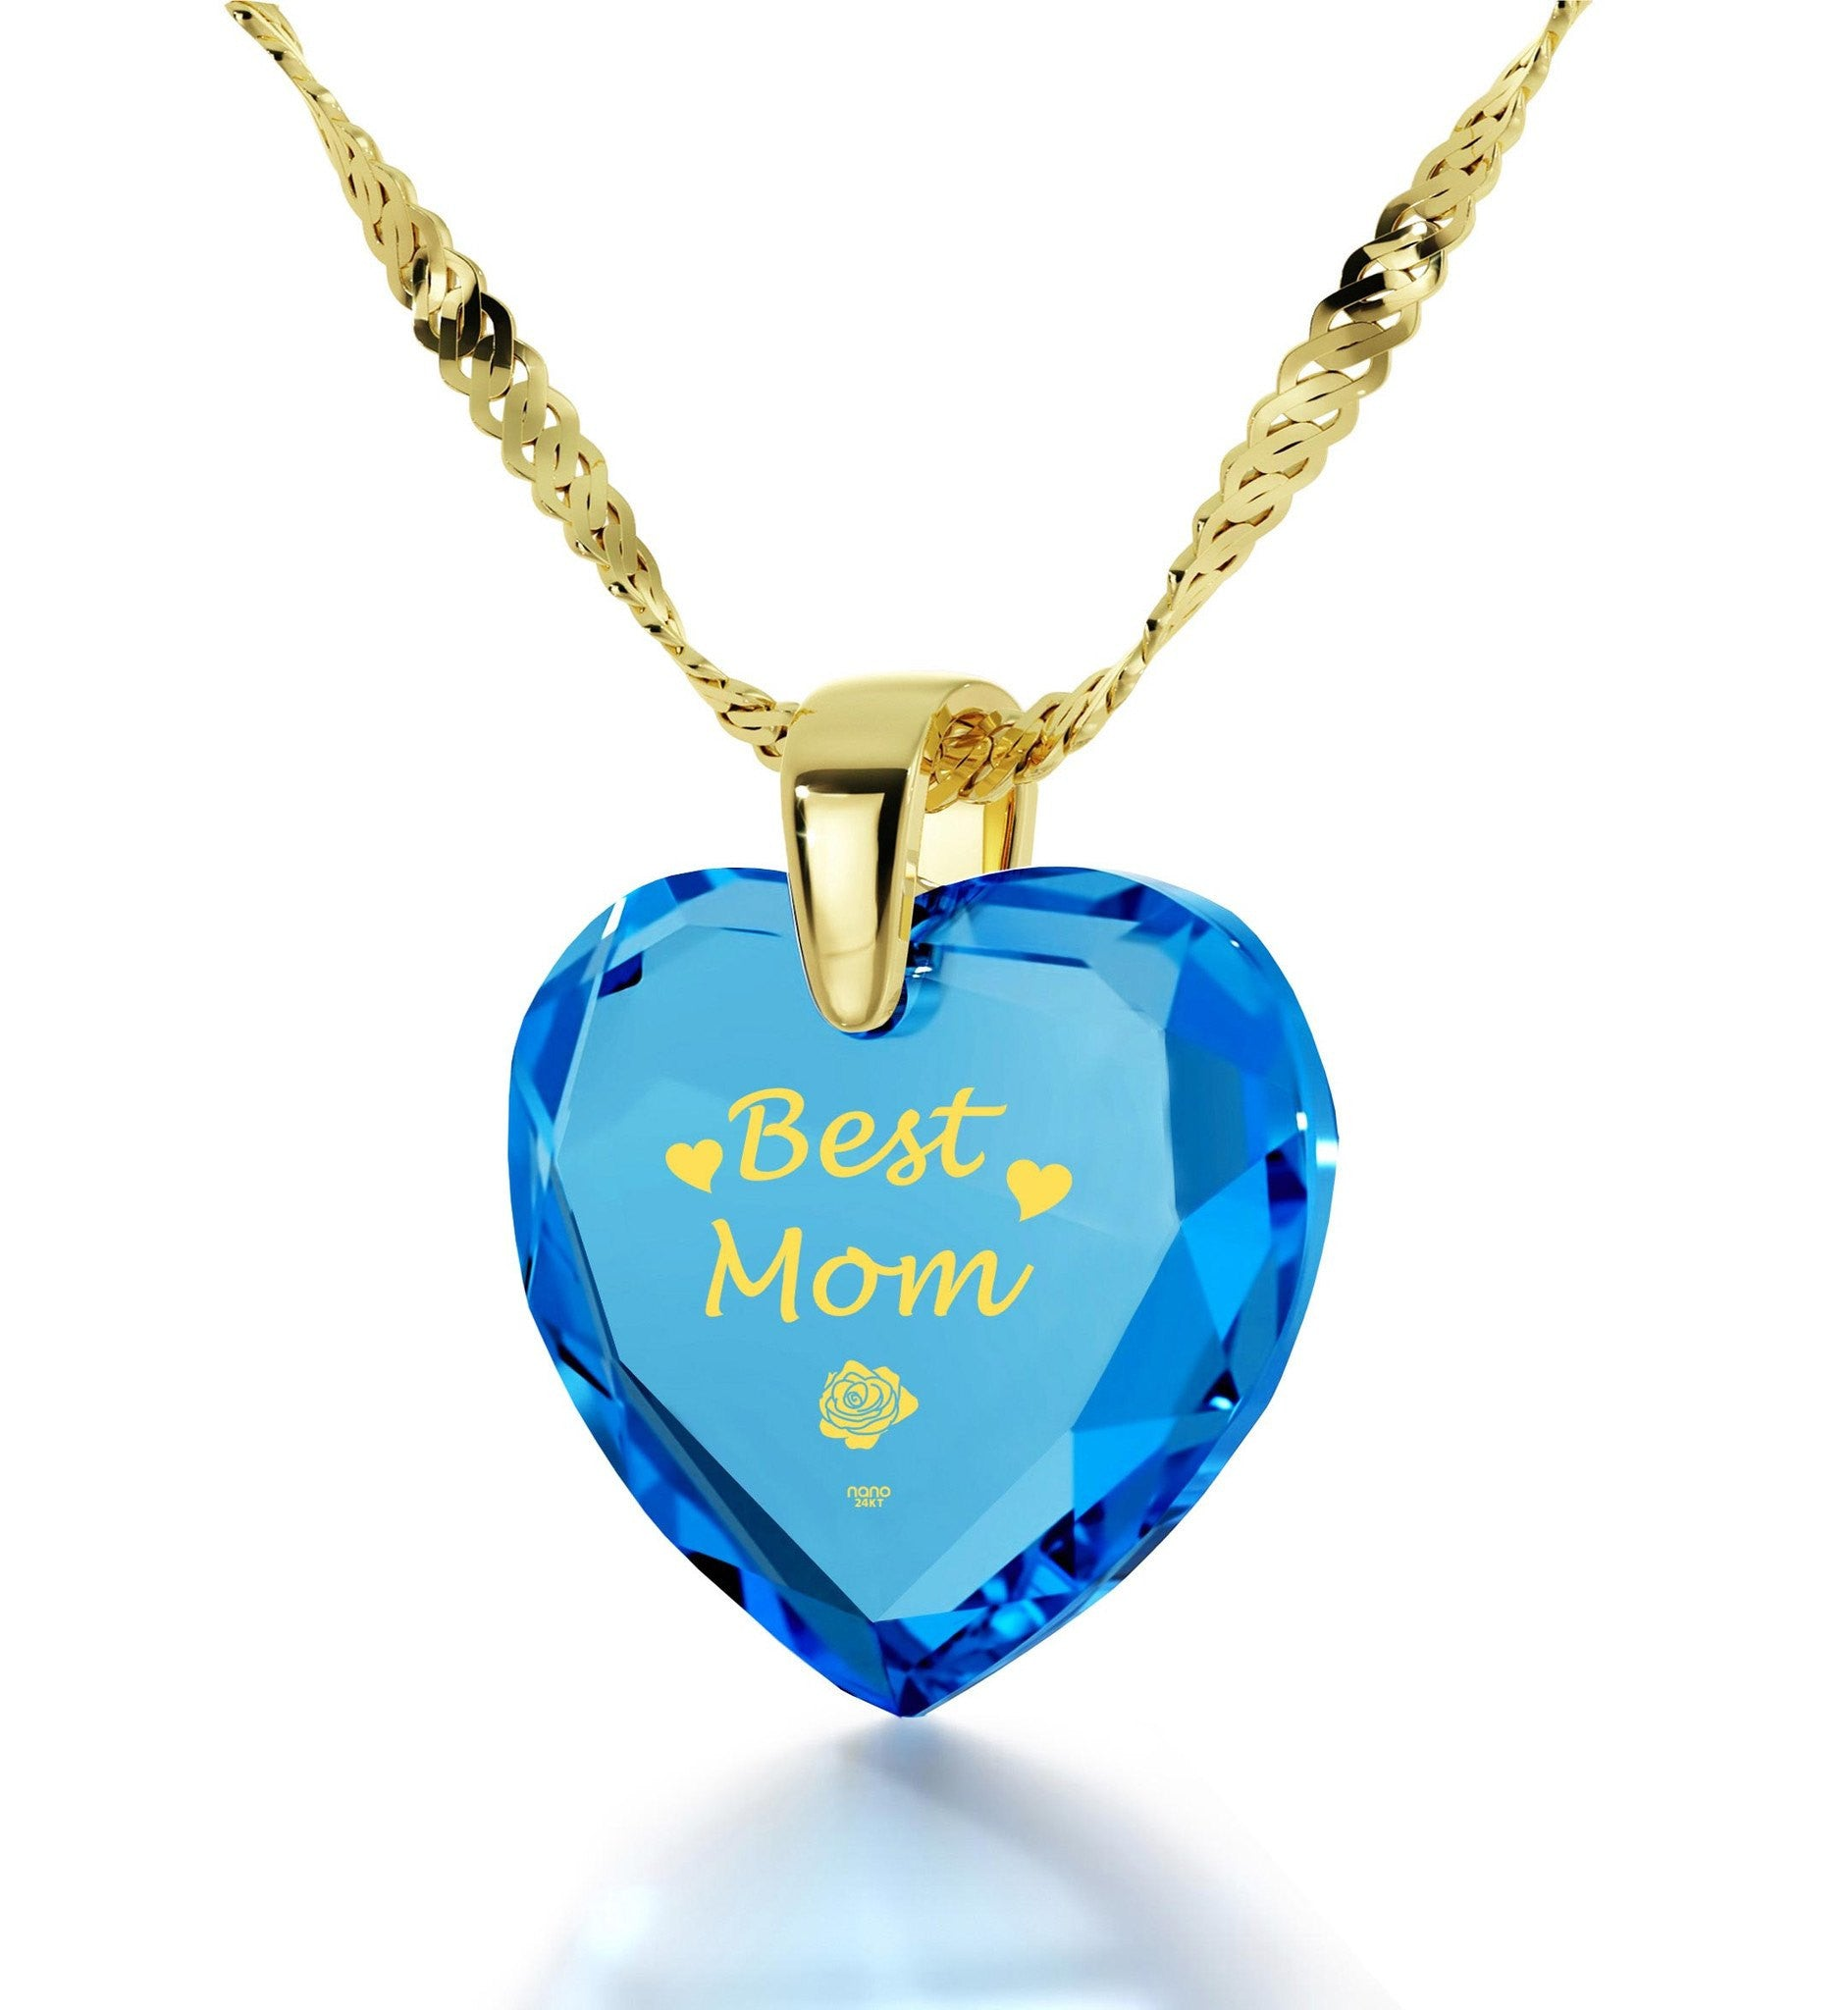 Good Presents for Mom, Gold Chain with Pendant, Best Gift for Mother's Day, by Nano Jewelry